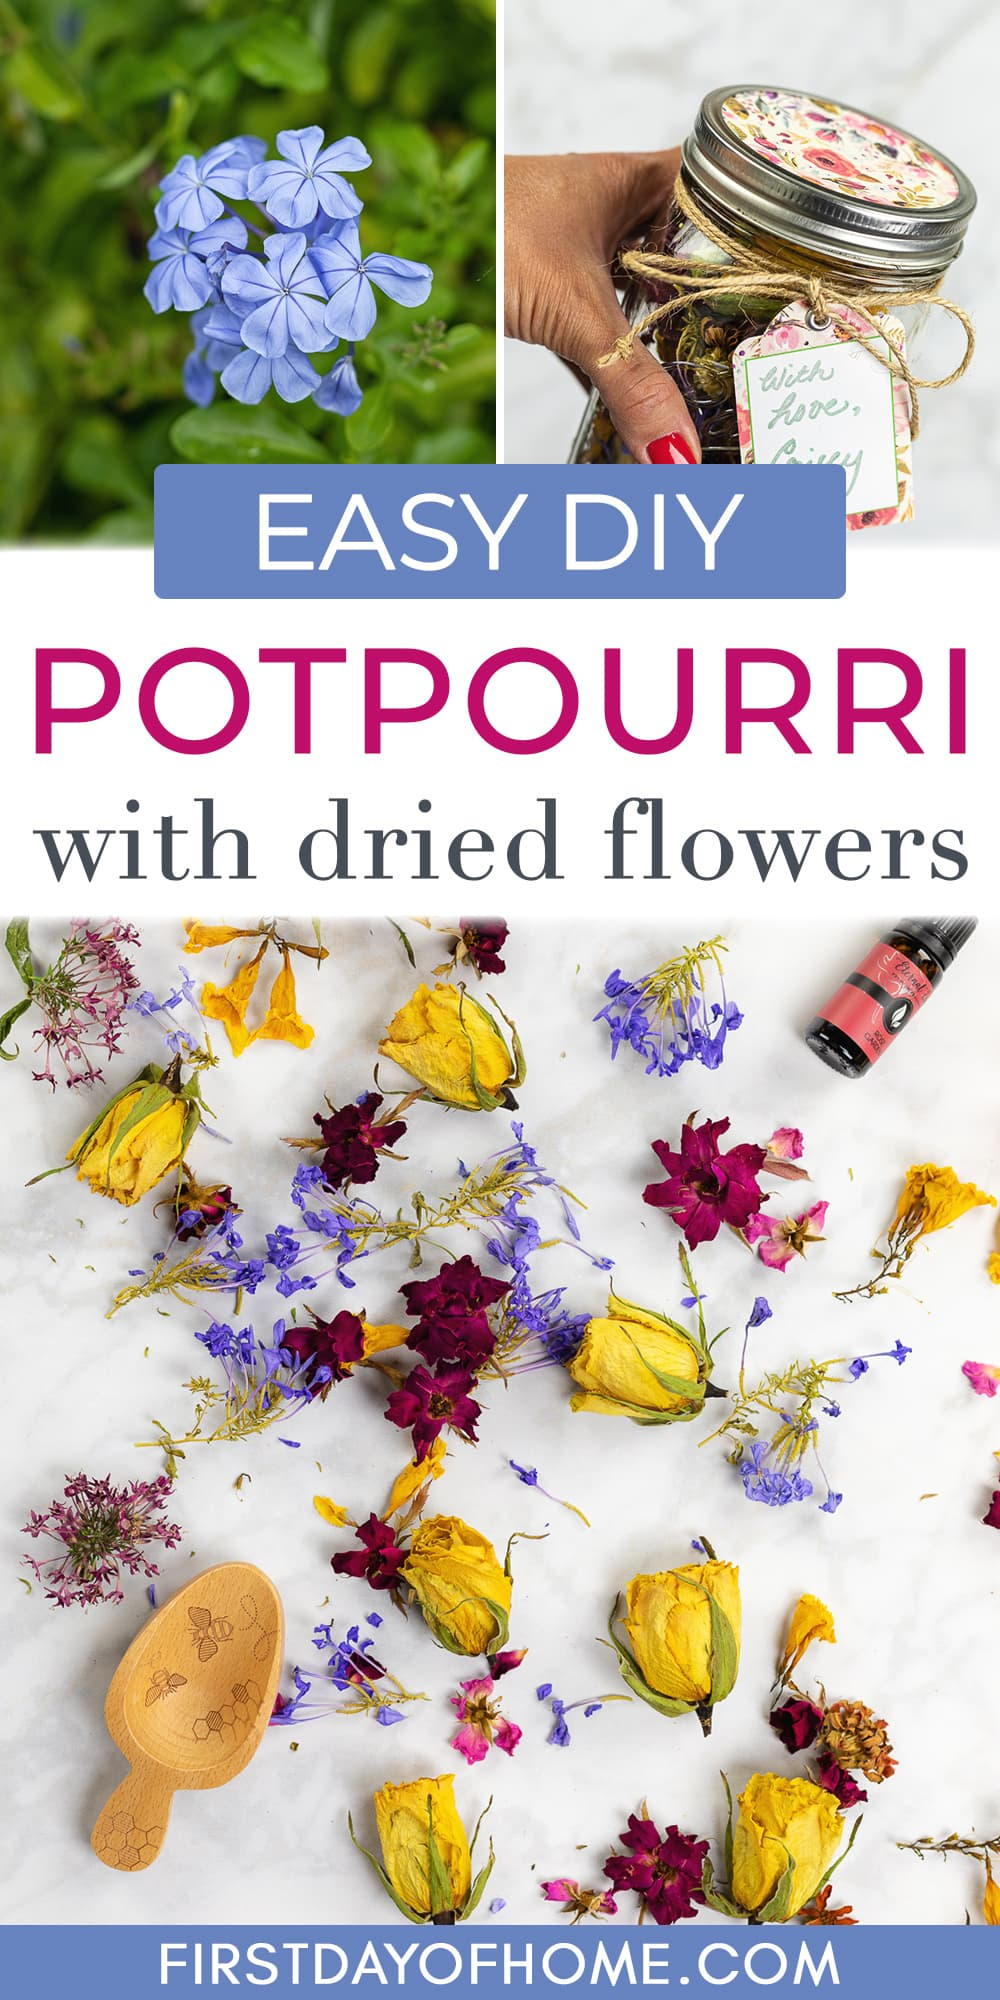 """Plumbago flowers, dried flower potpourri and mason jar filled with potpourri. Text overlay reads """"Easy DIY Potpourri with dried flowers"""""""